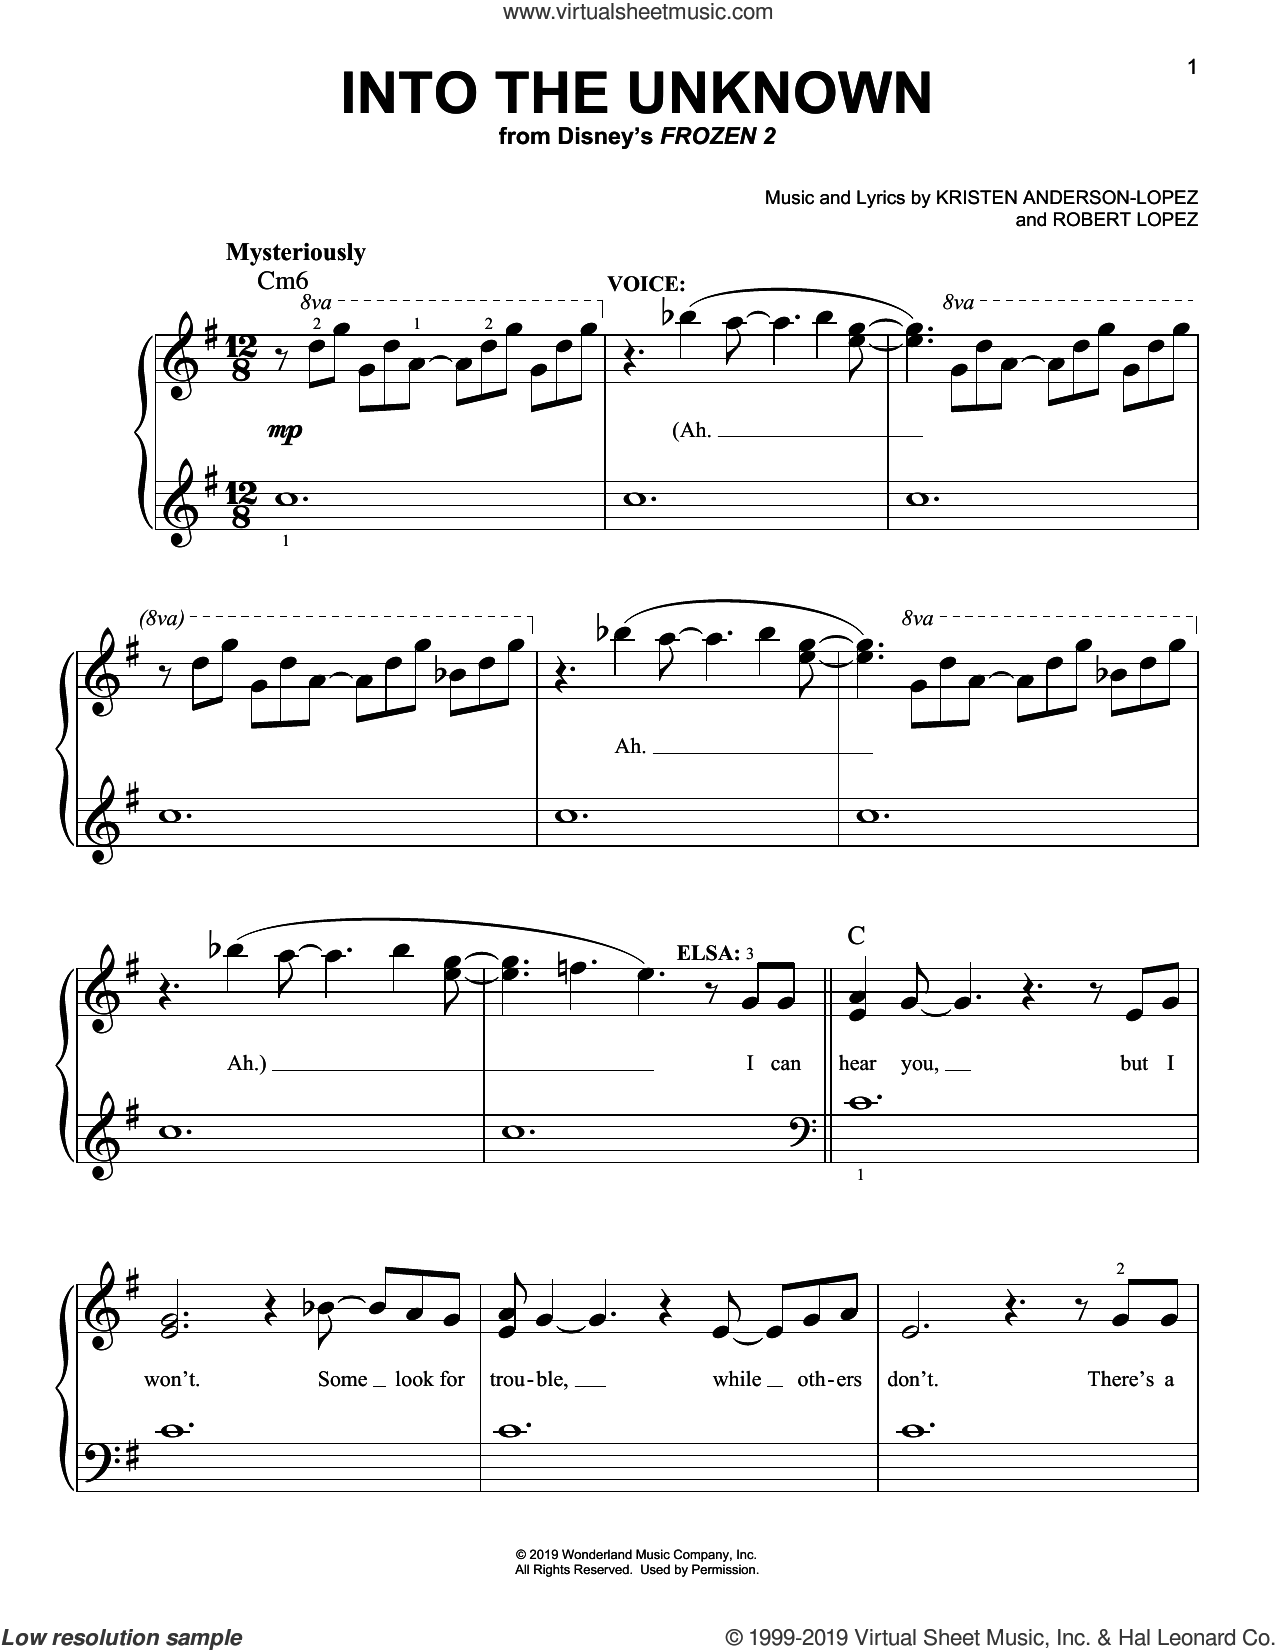 Into The Unknown (from Disney's Frozen 2) sheet music for piano solo by Idina Menzel and AURORA, Kristen Anderson-Lopez and Robert Lopez, easy skill level